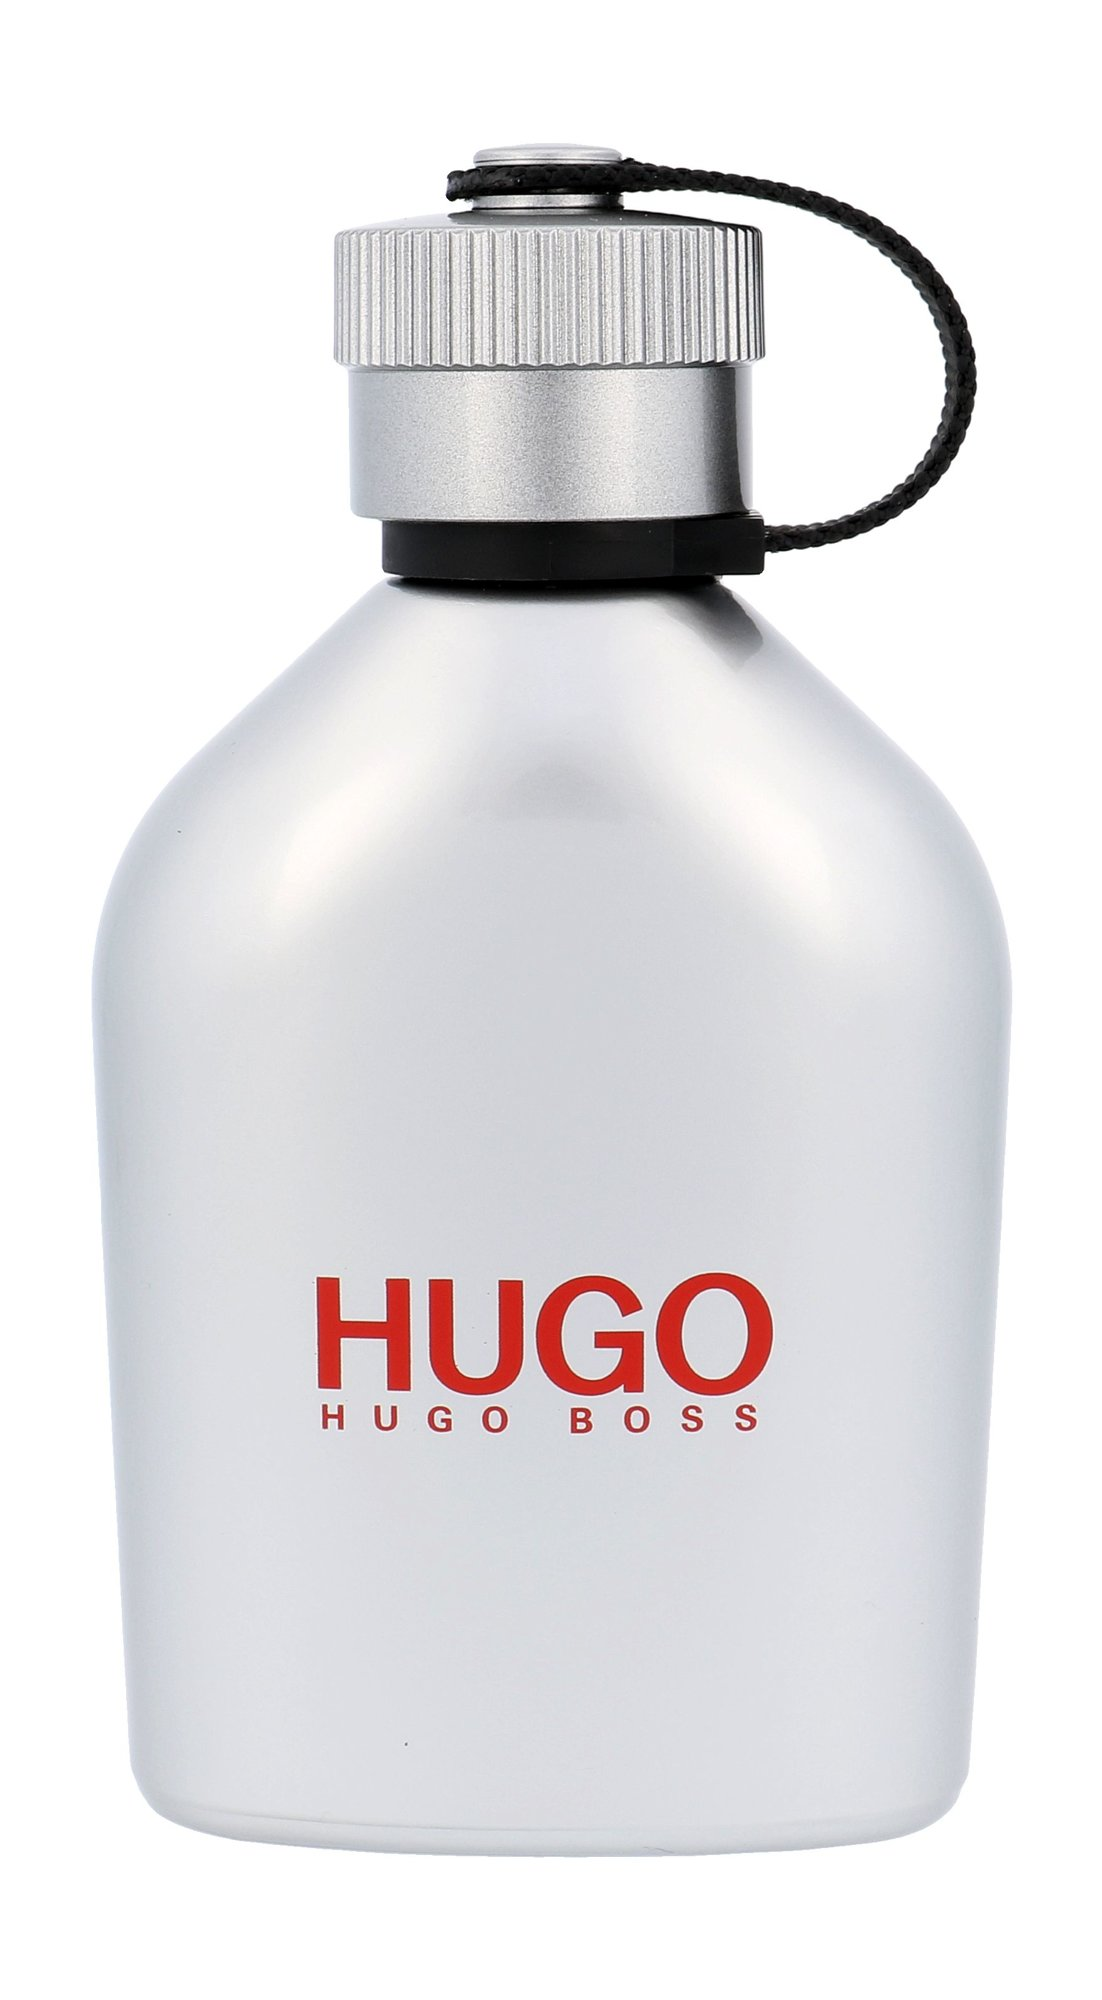 HUGO BOSS Hugo Iced EDT 125ml